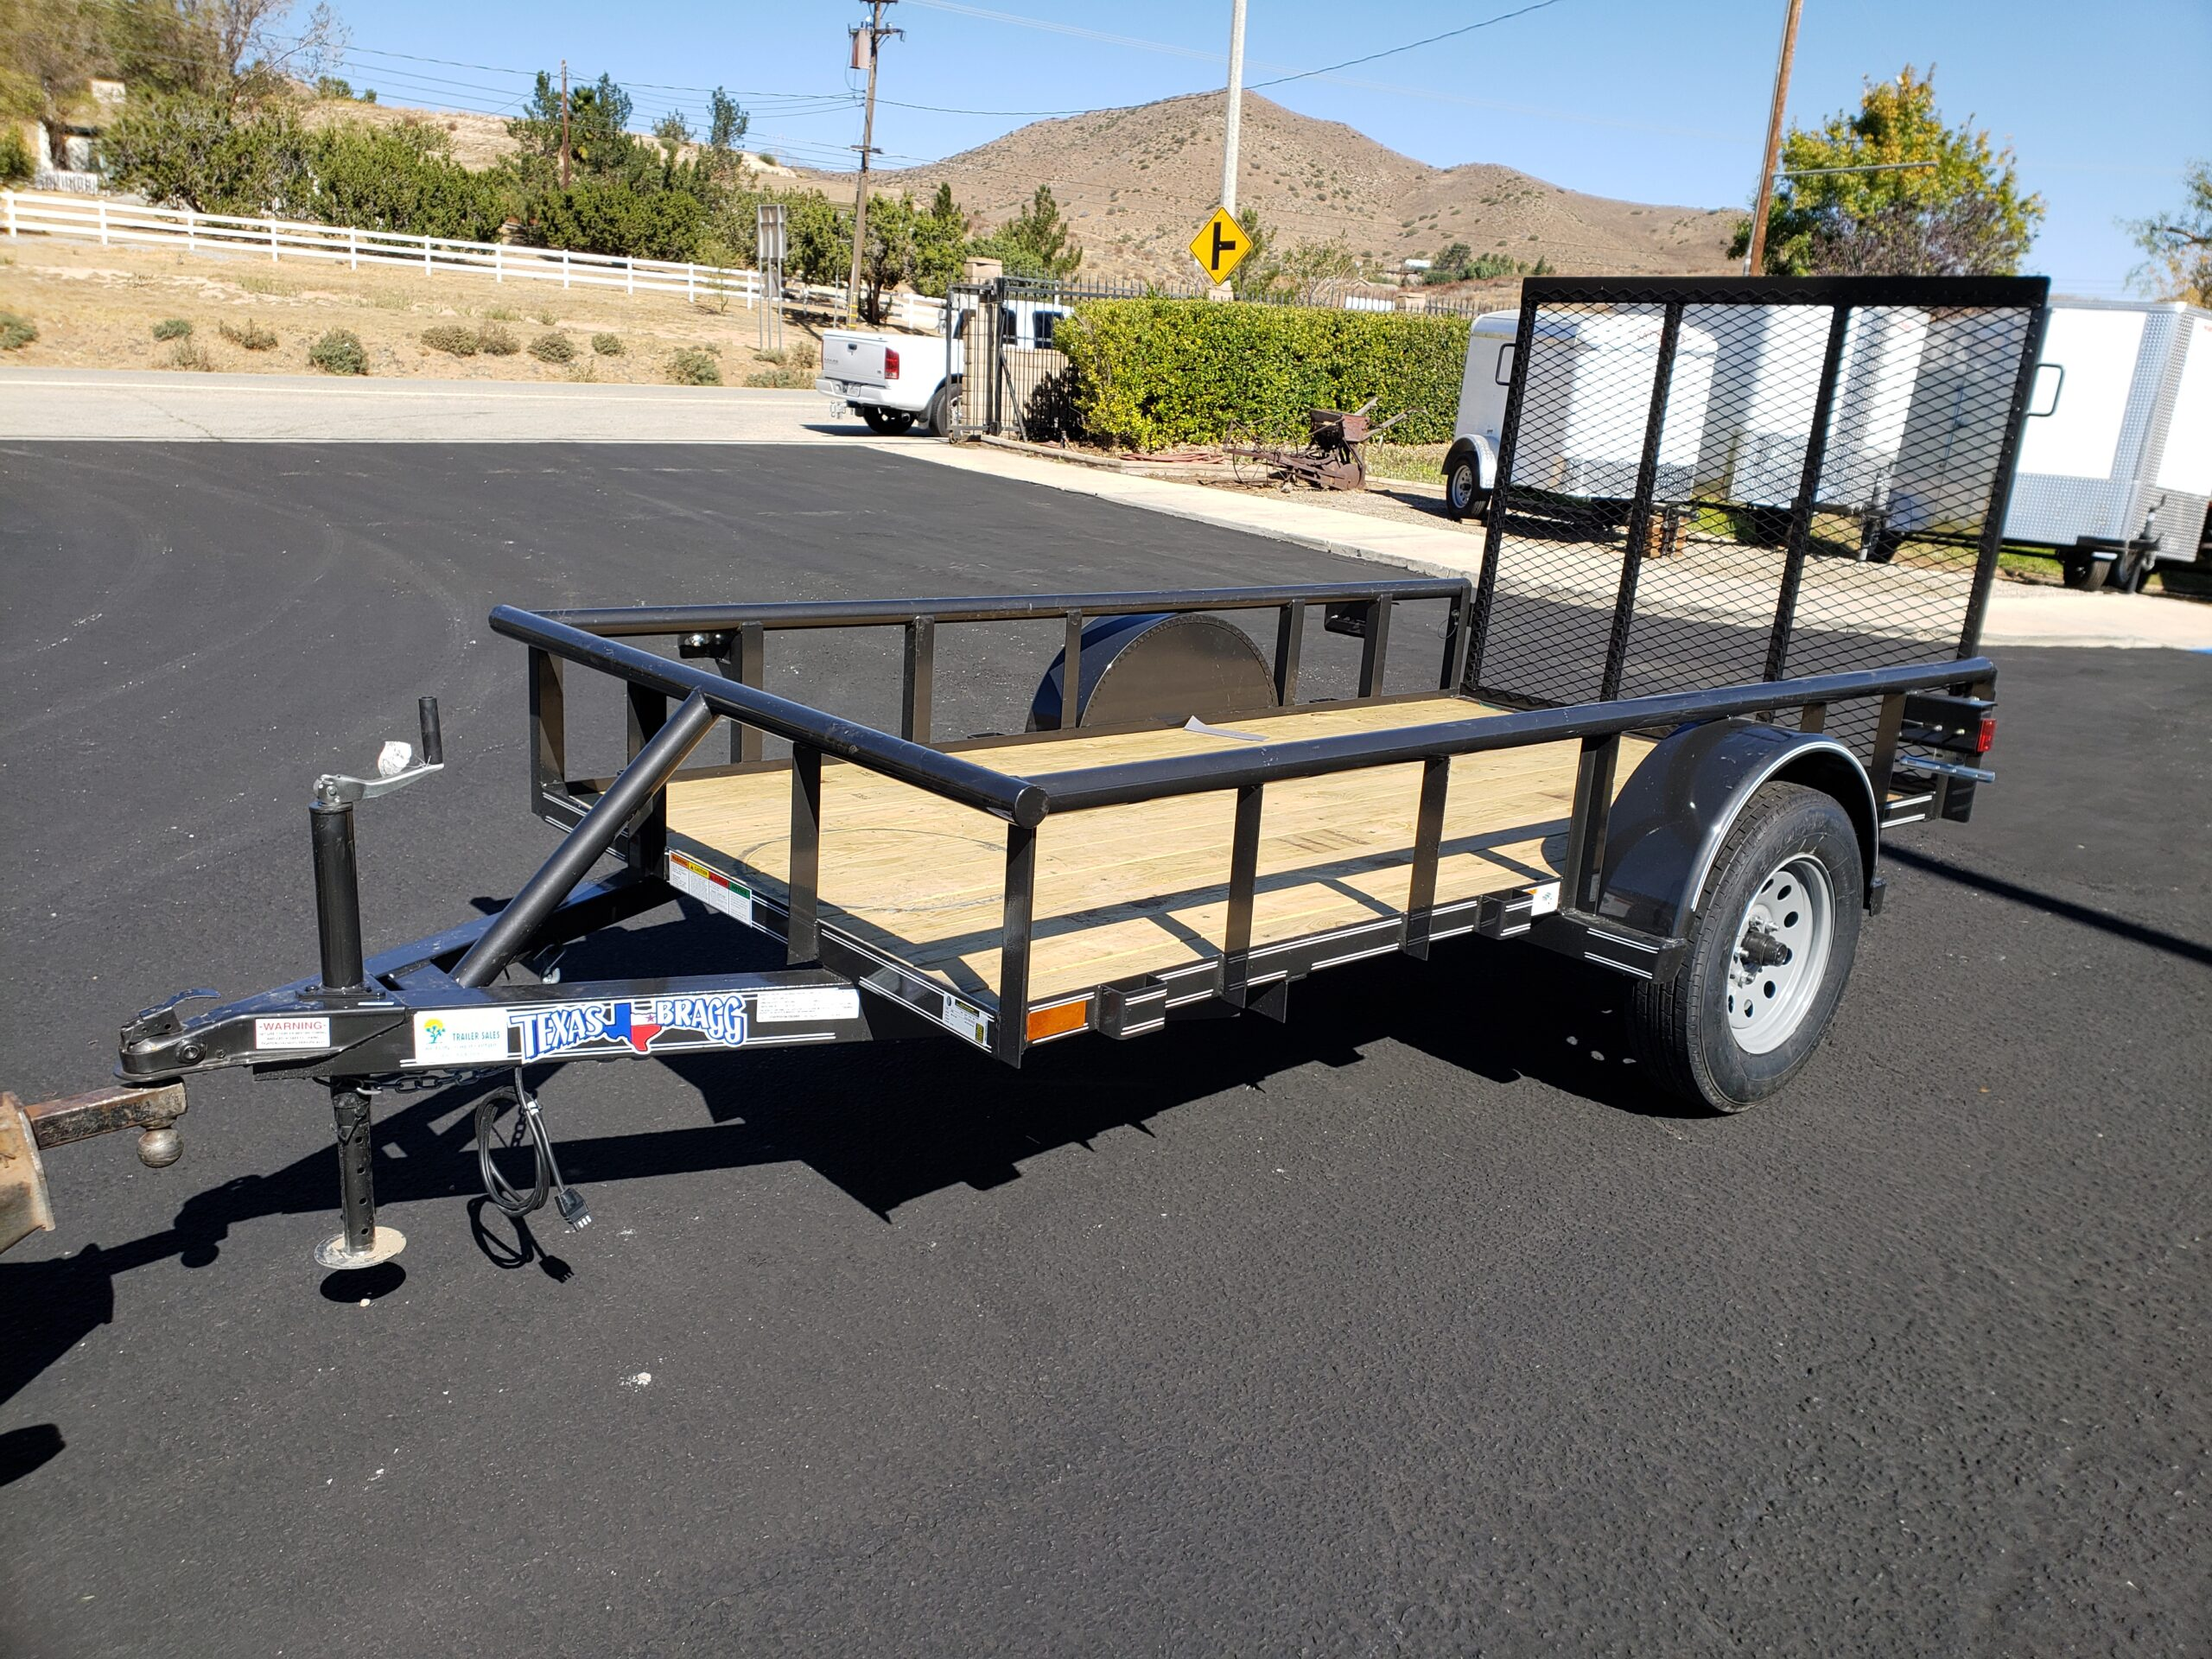 Texas Bragg 5x10 Ramp - Driver side front 3/4 view